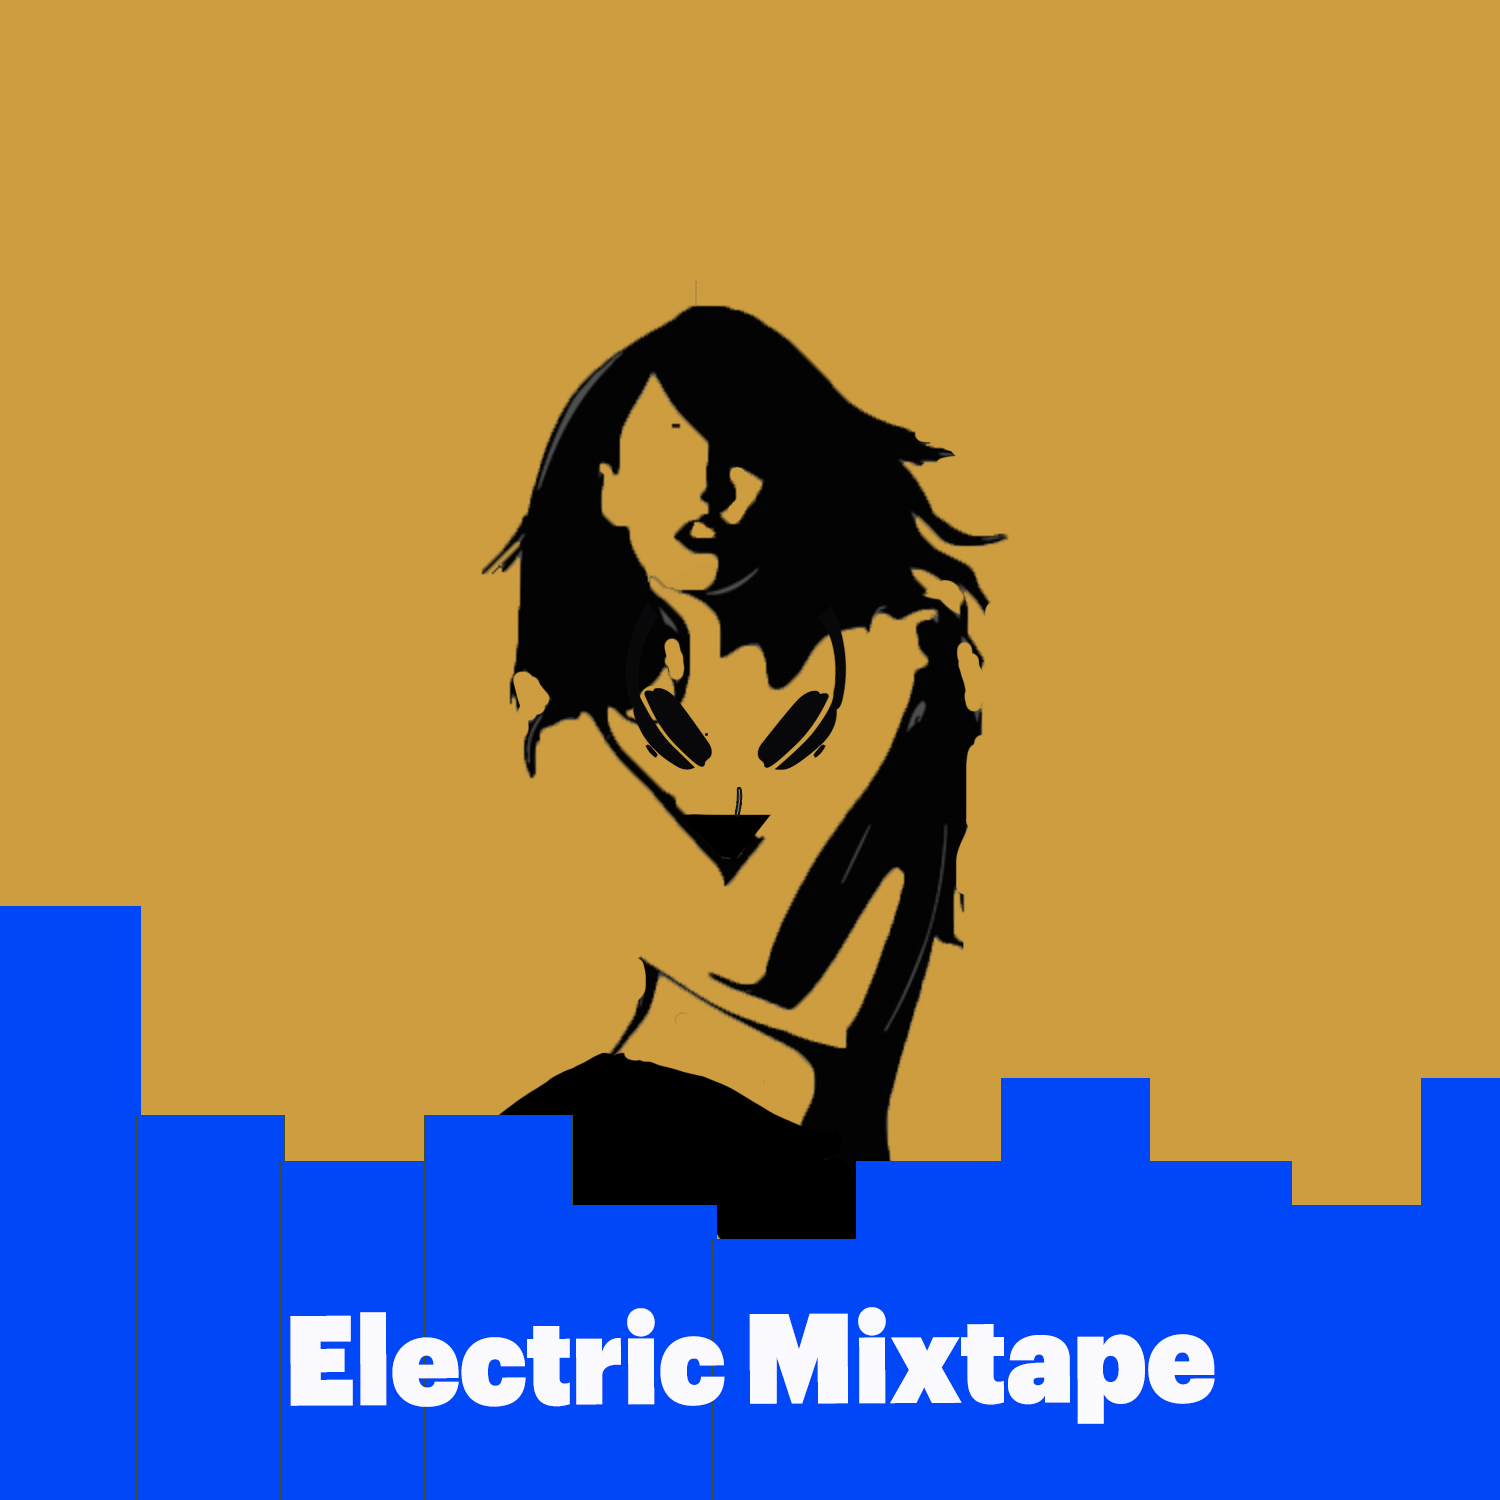 Electric Mixtape